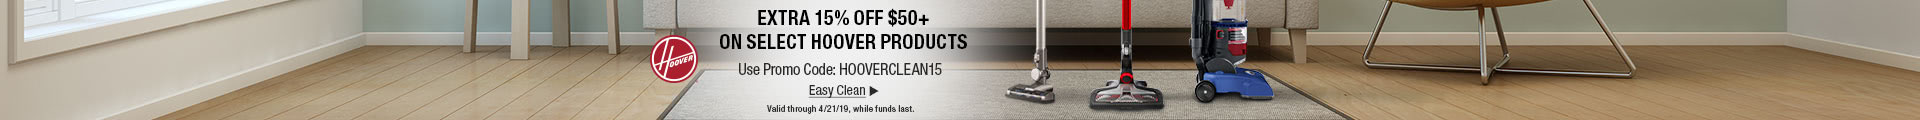 15% off $50+ on select Hoover products